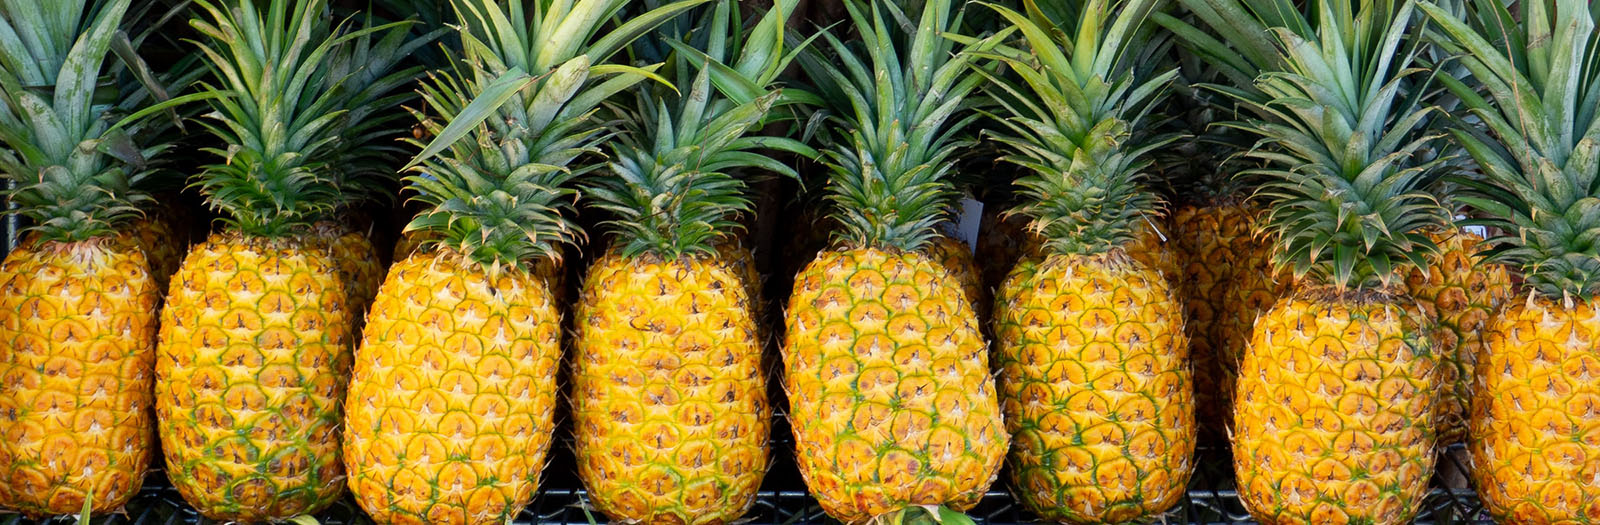 image of a row of pineapples